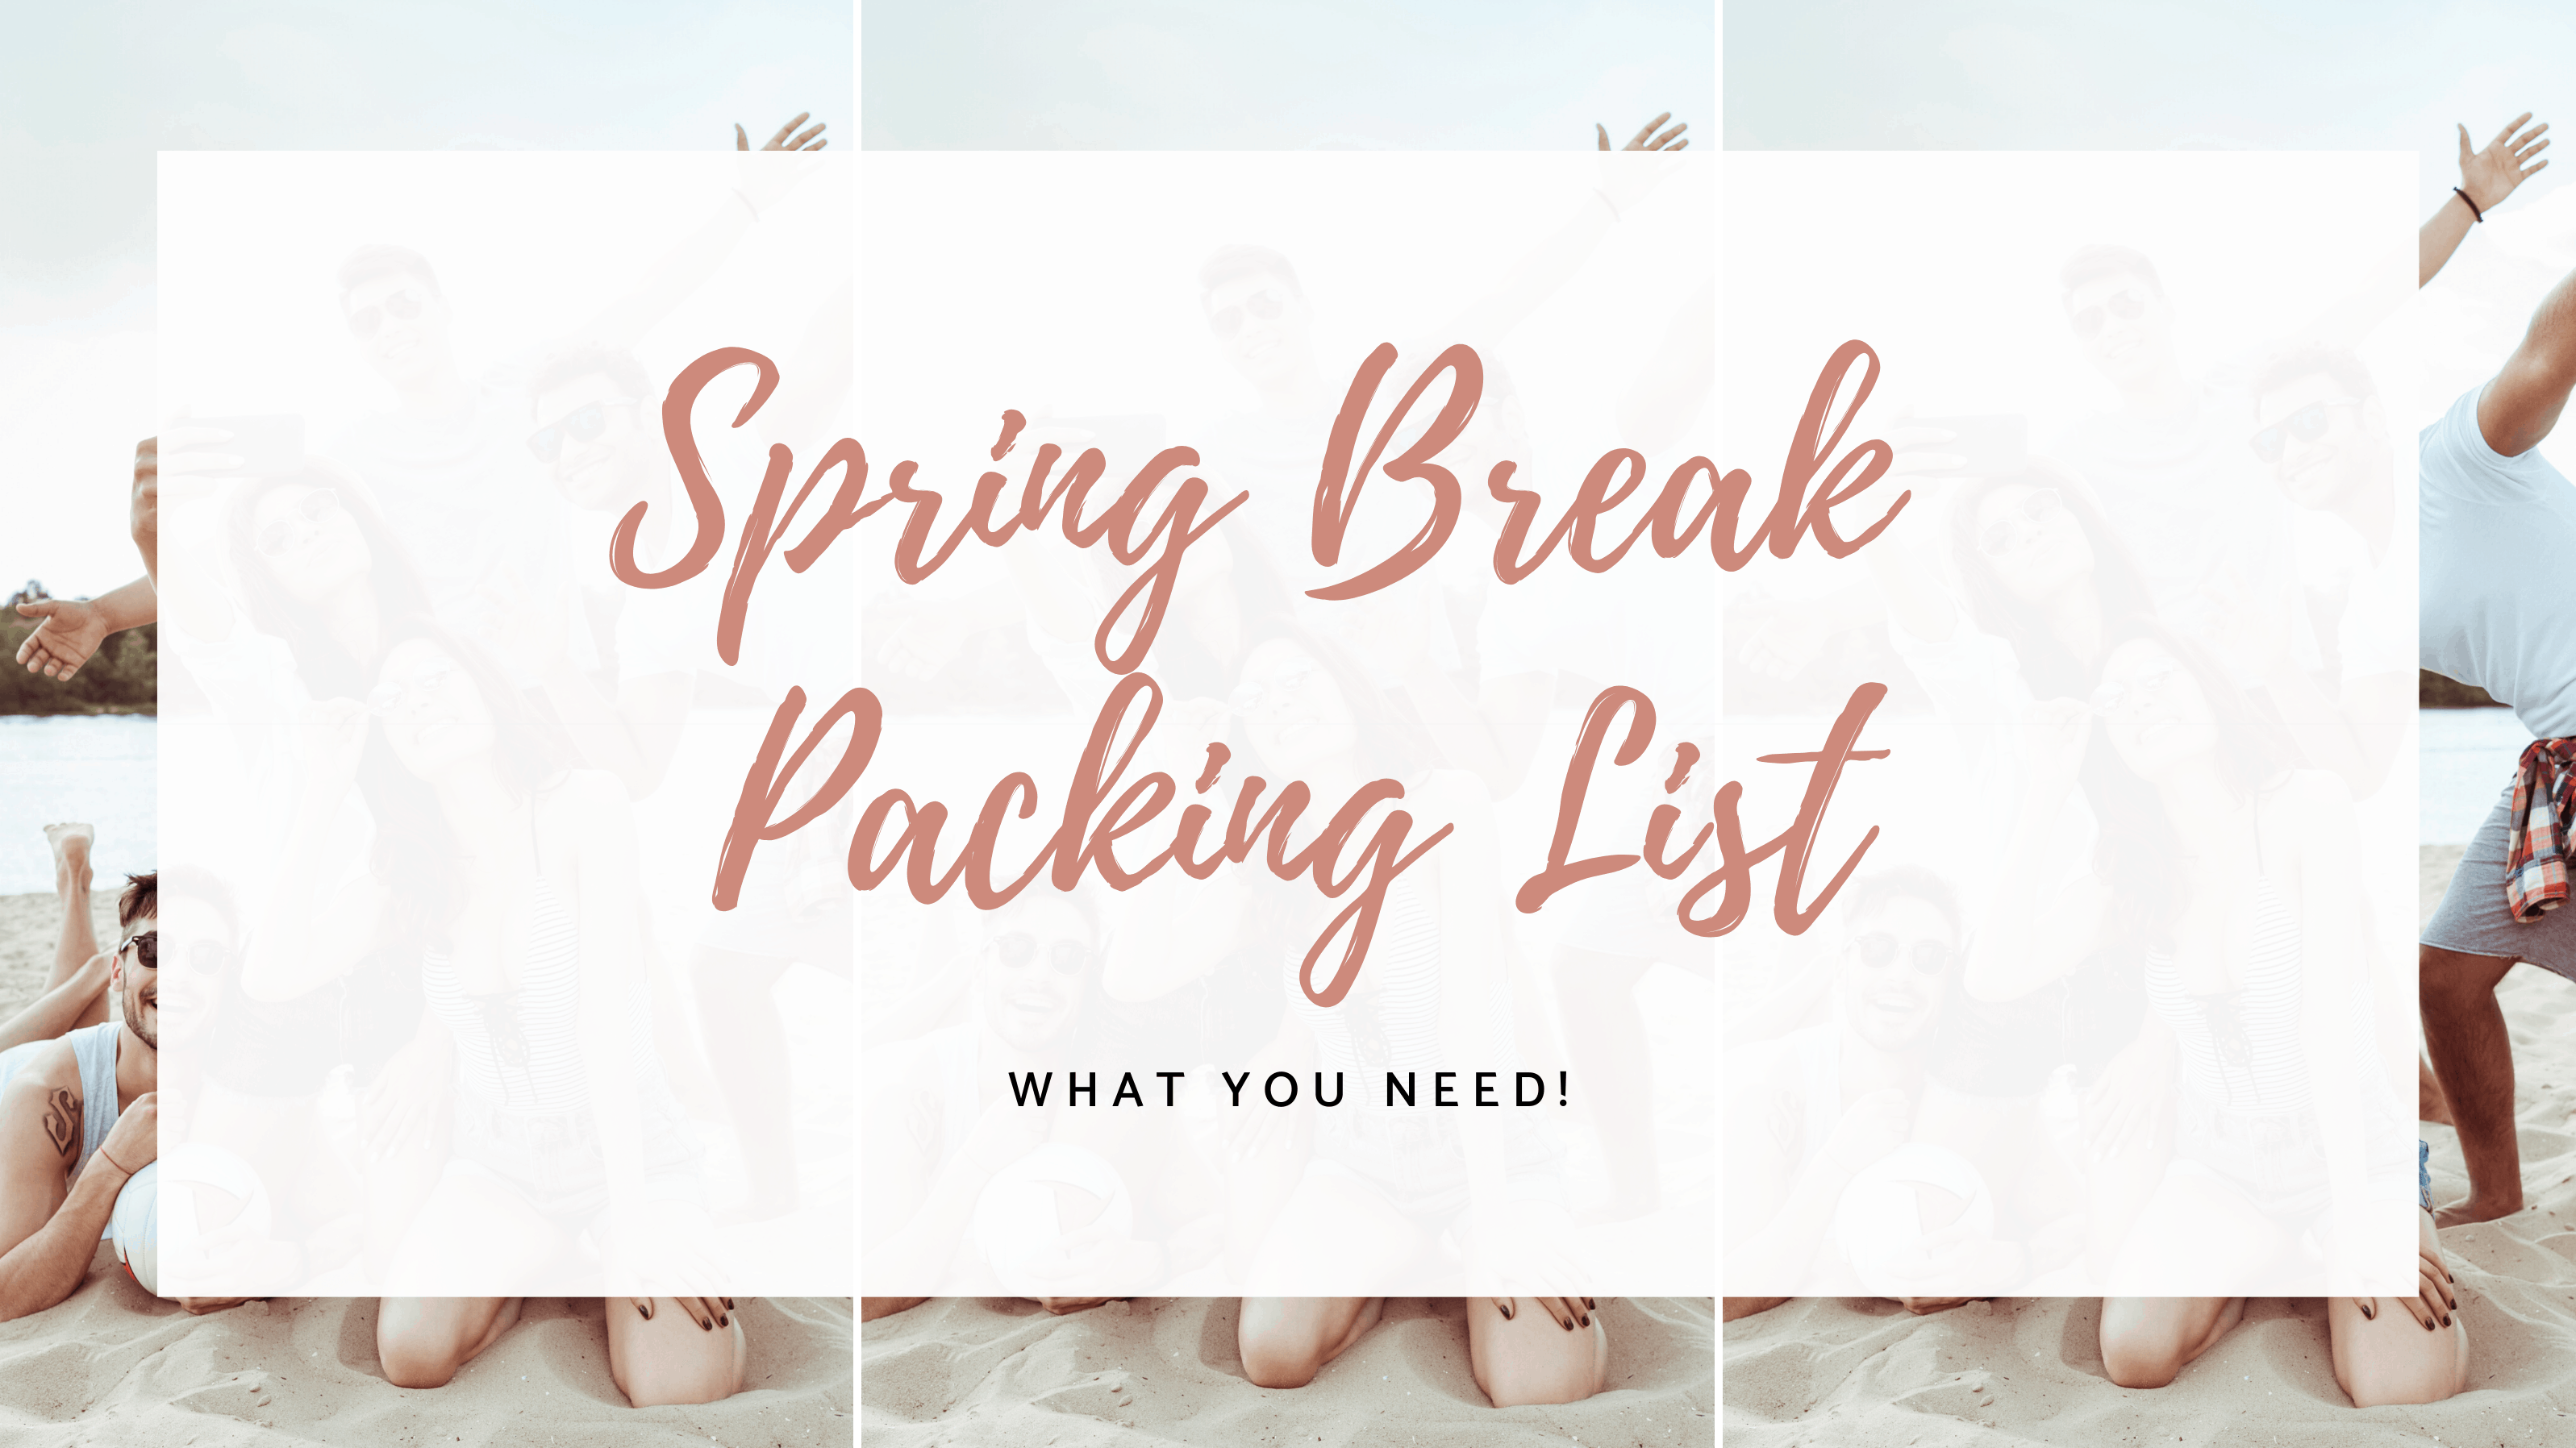 beach spring break packing list